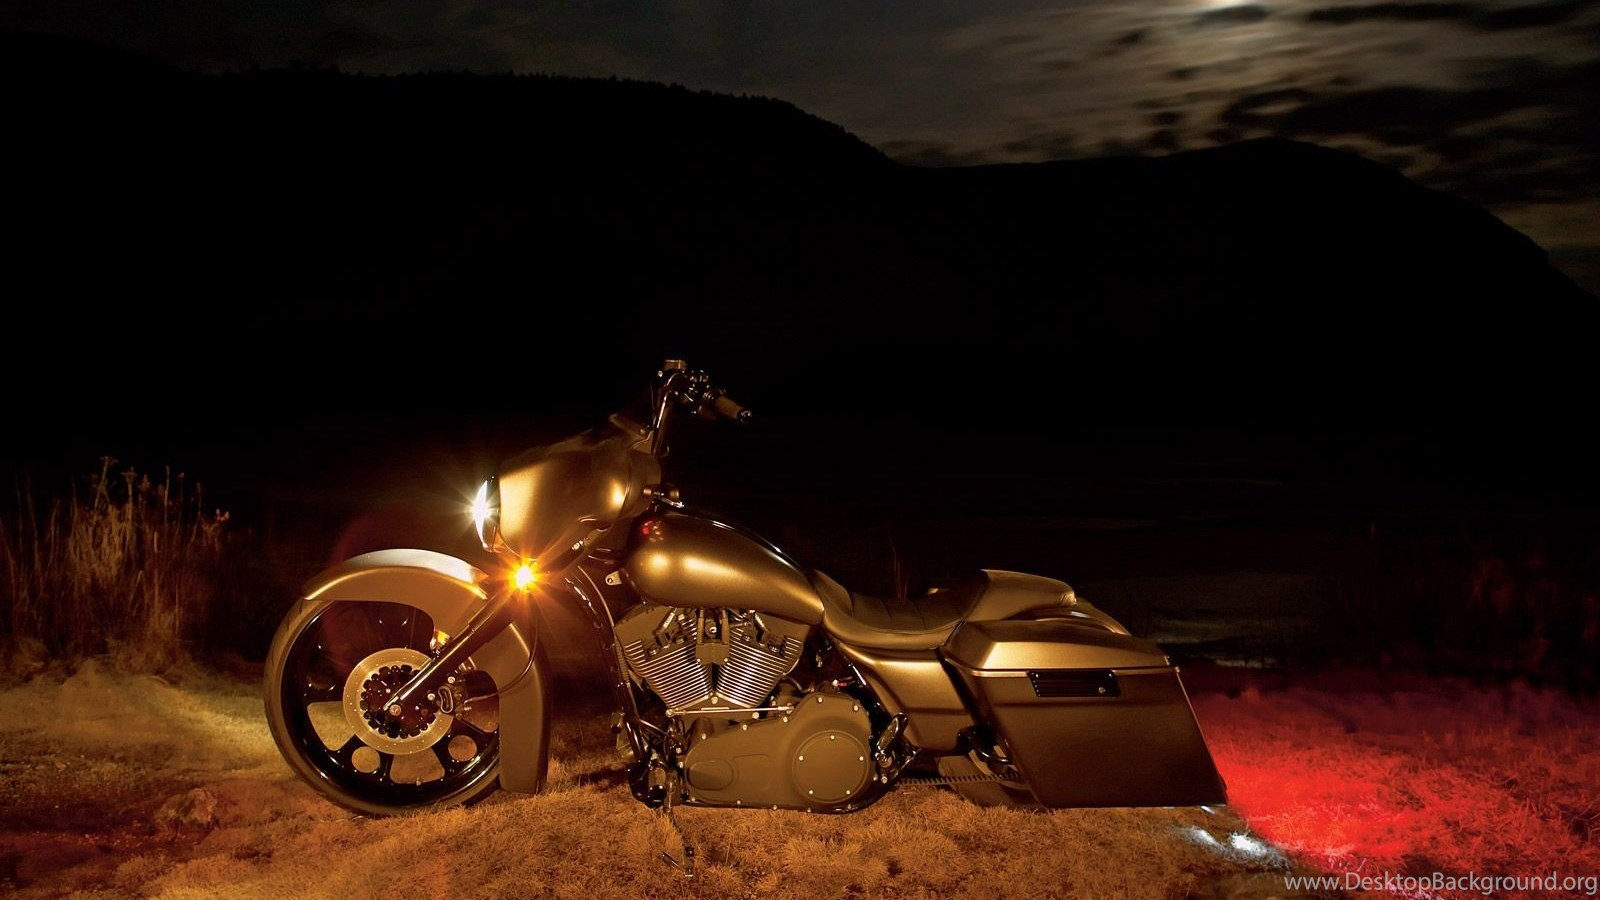 2007 Harley Davidson Chopped Street Glide Computer Wallpapers